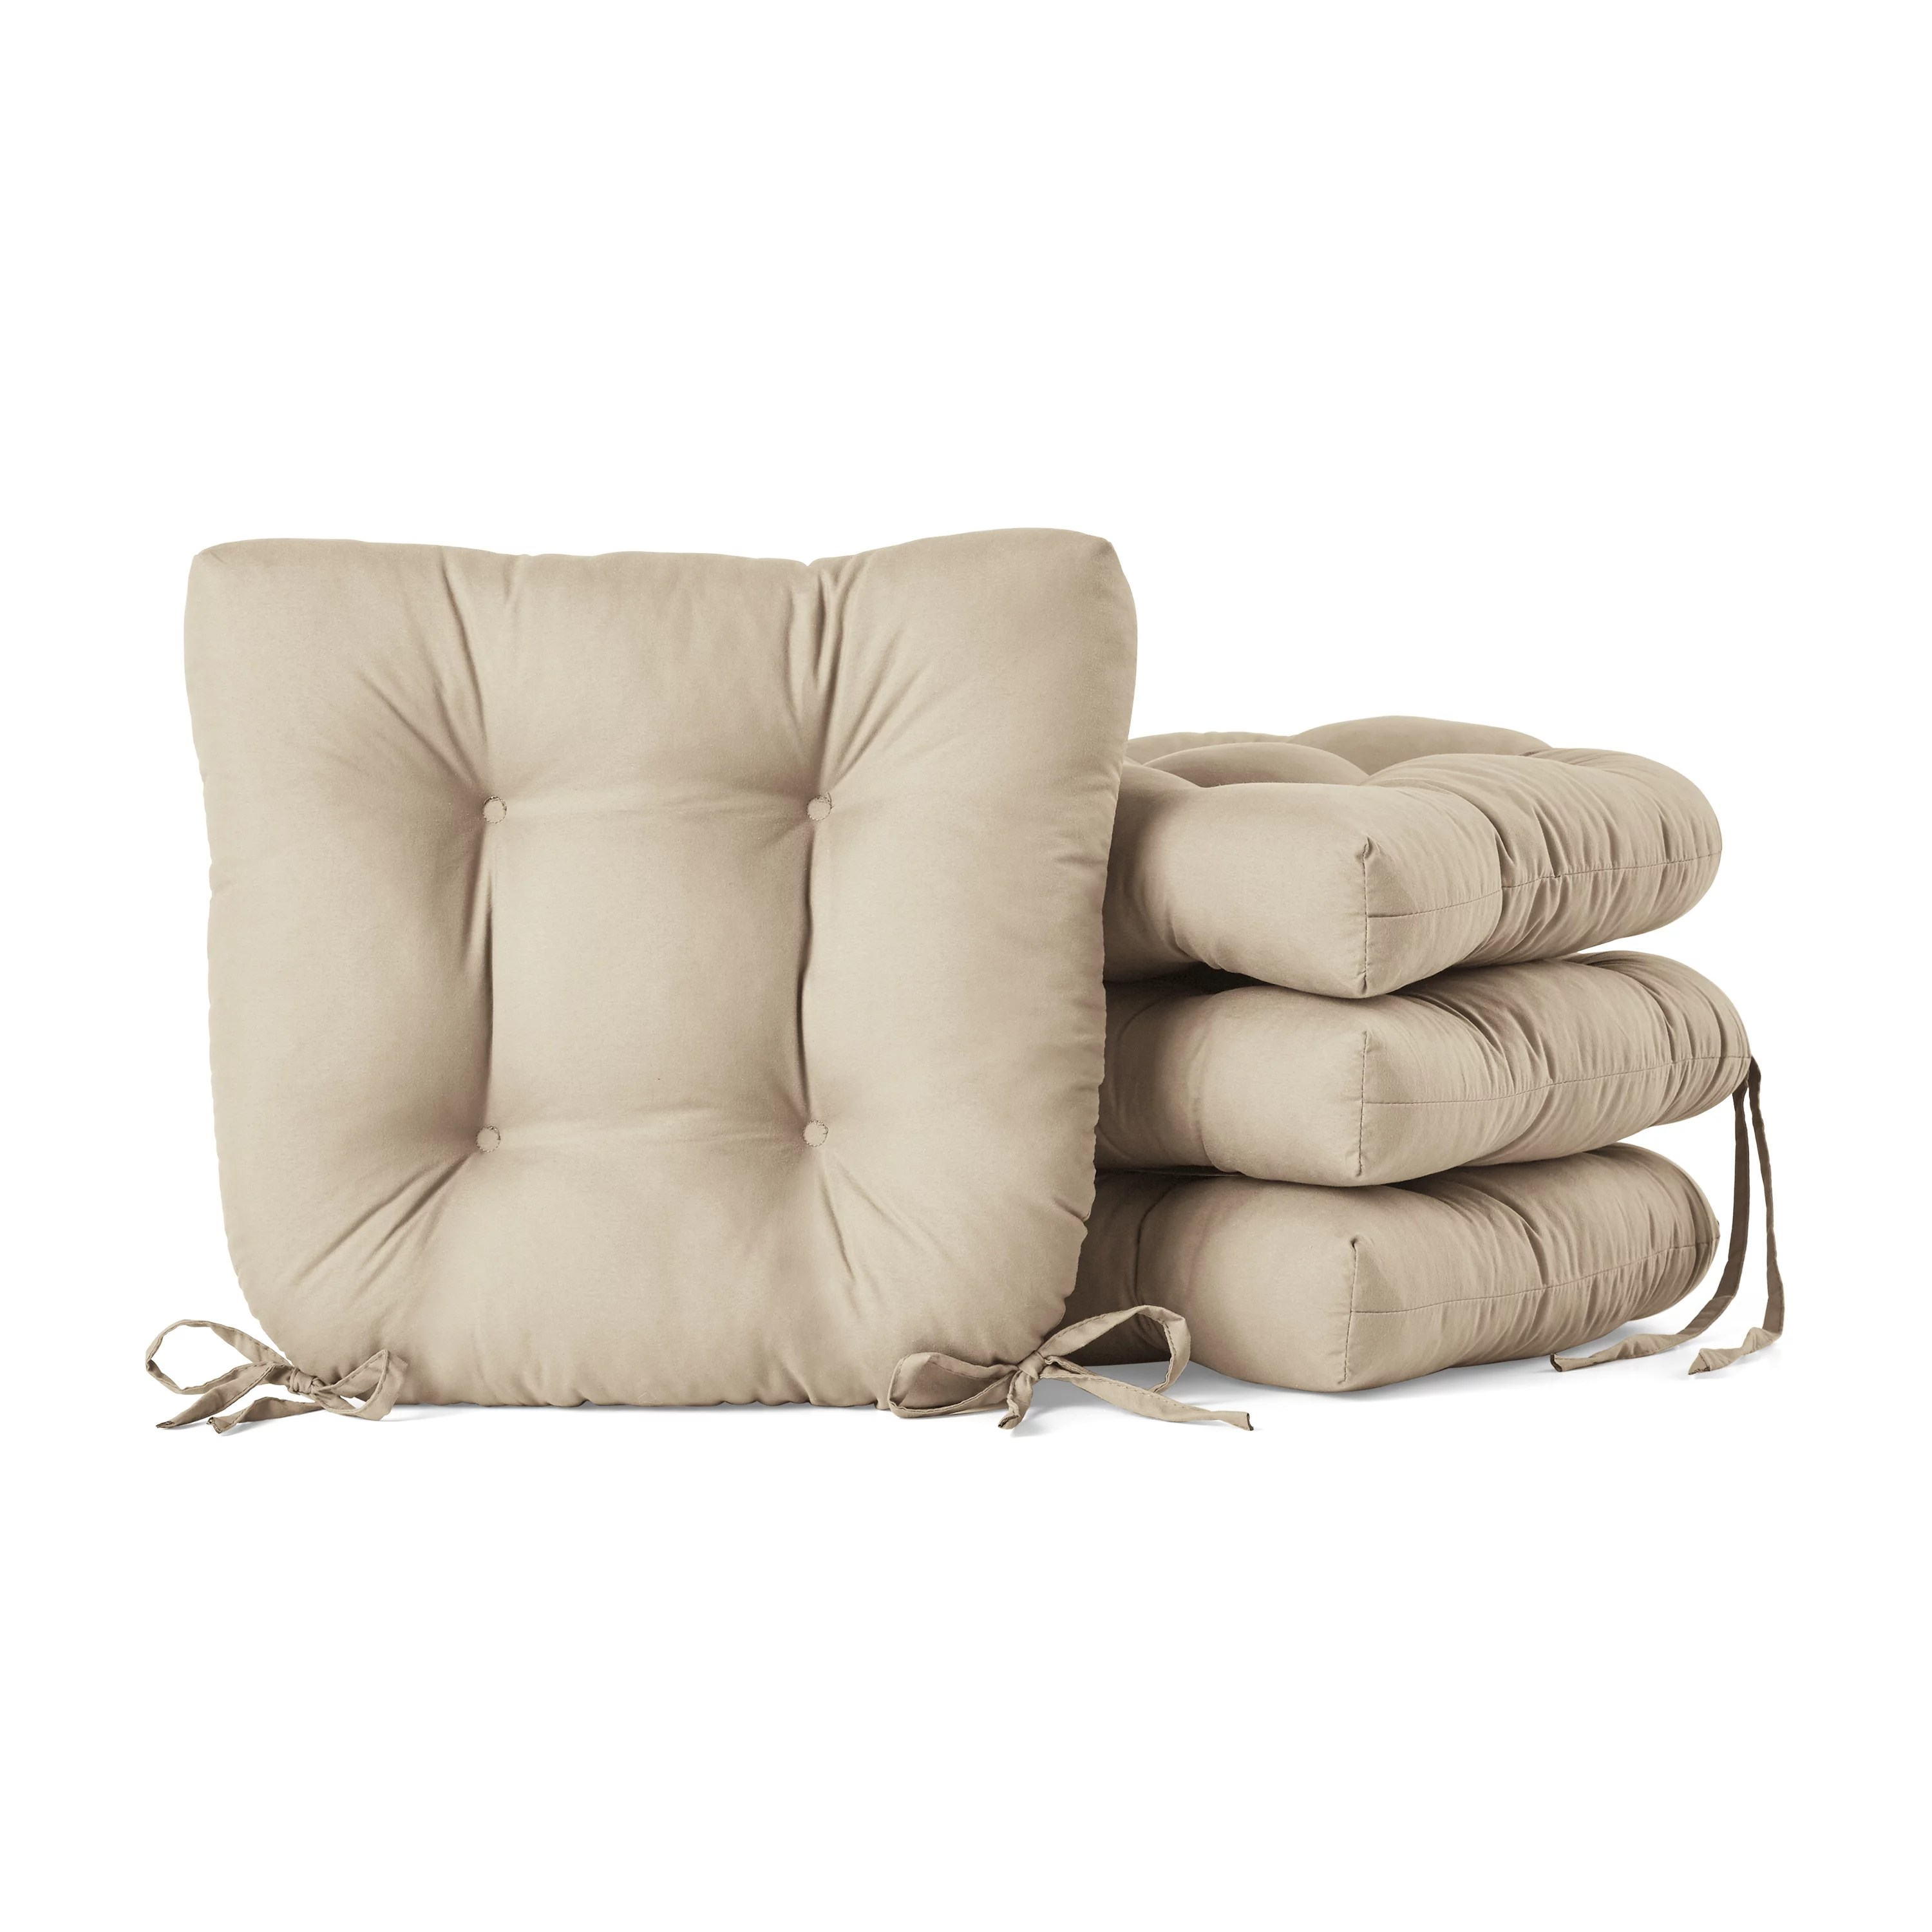 mainstays faux suede 14 5 chair cushion with ties 4 pack brownstone